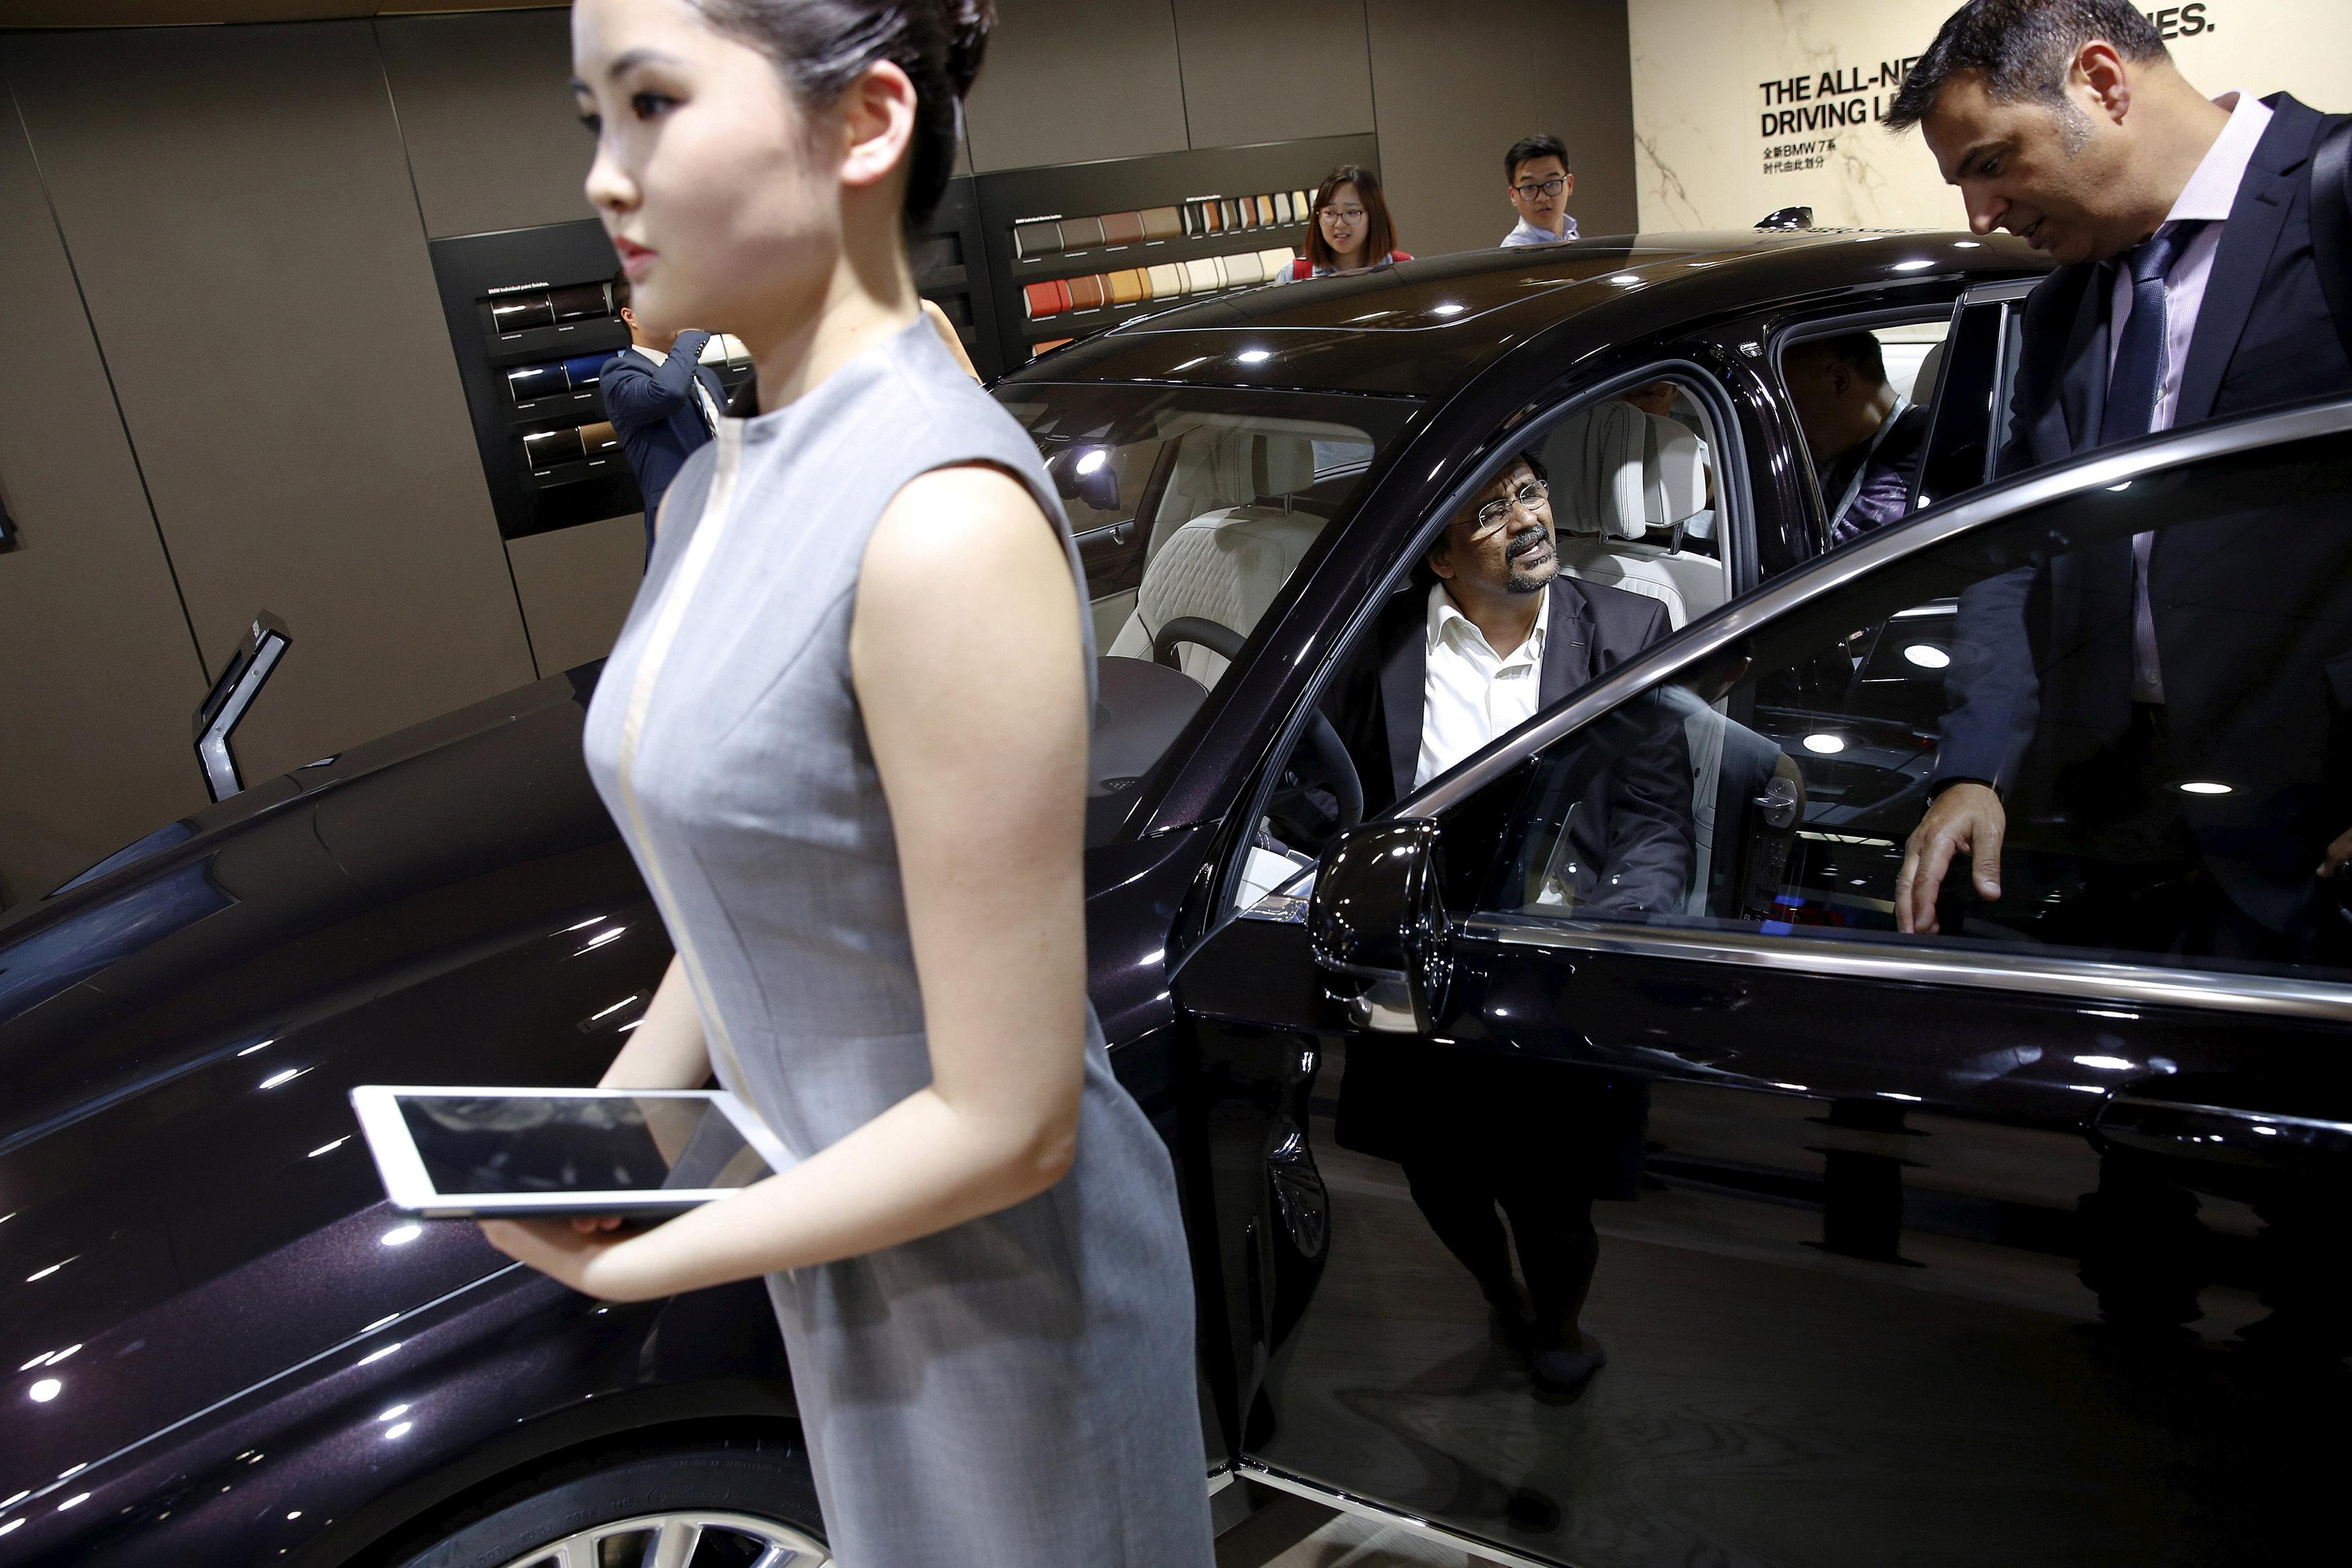 People check out the new BMW M760Li xDrive as it is presented during the Auto China 2016 auto show in Beijing April 25, 2016. Damir Sagolj